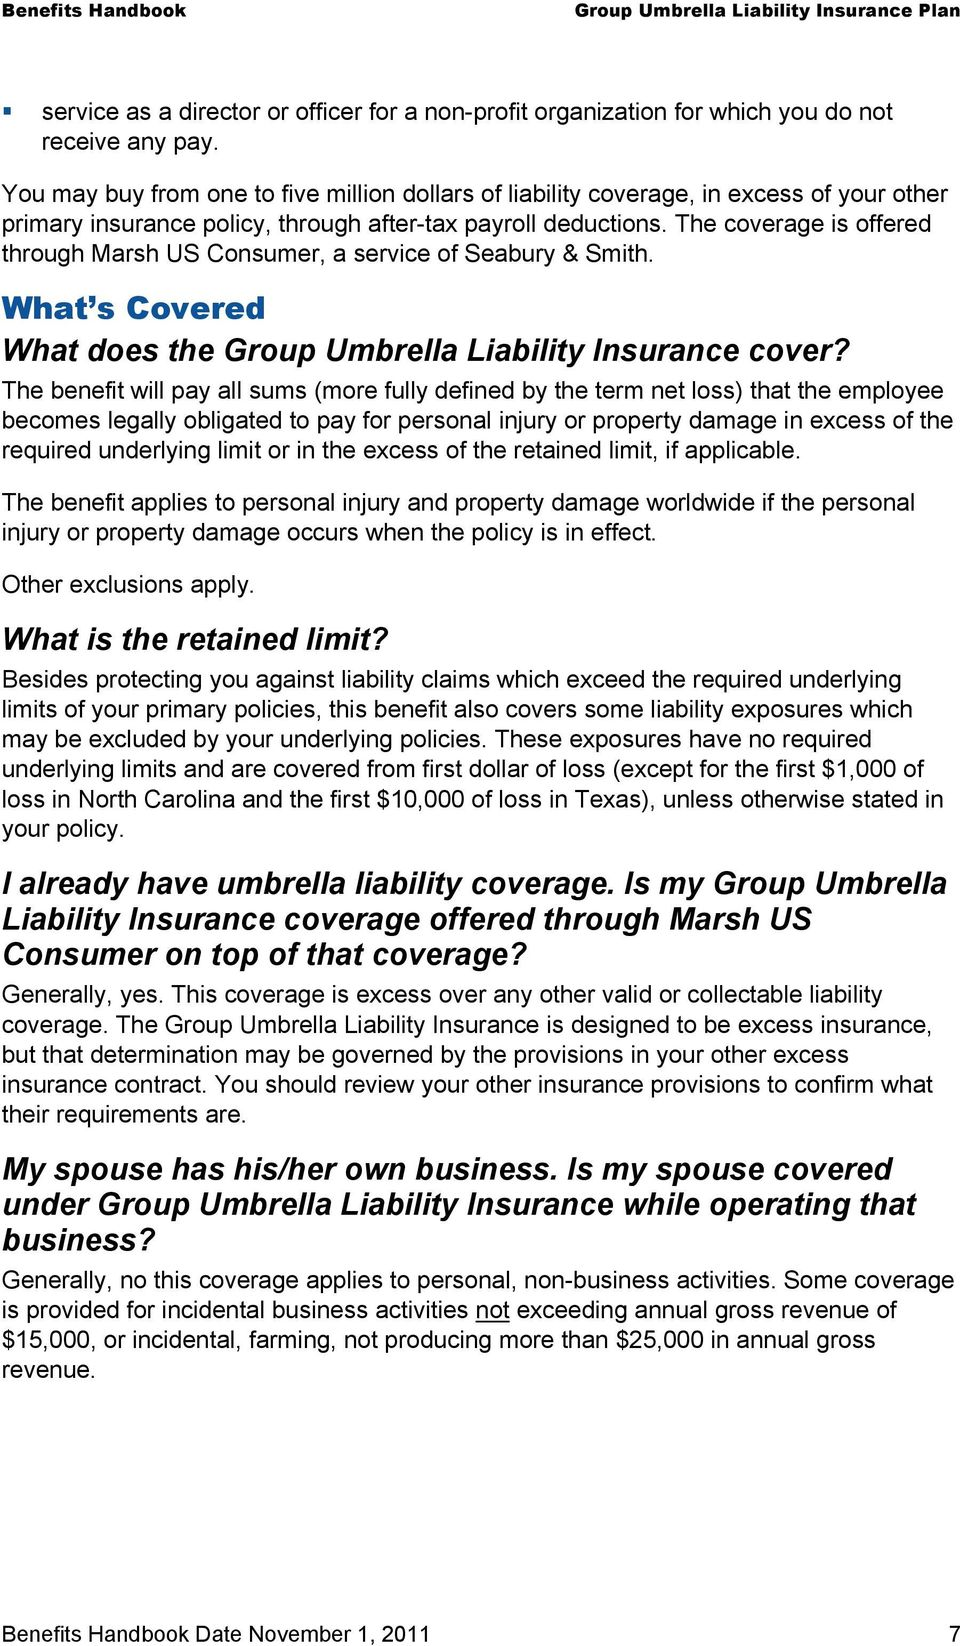 The coverage is offered through Marsh US Consumer, a service of Seabury & Smith. What s Covered What does the Group Umbrella Liability Insurance cover?